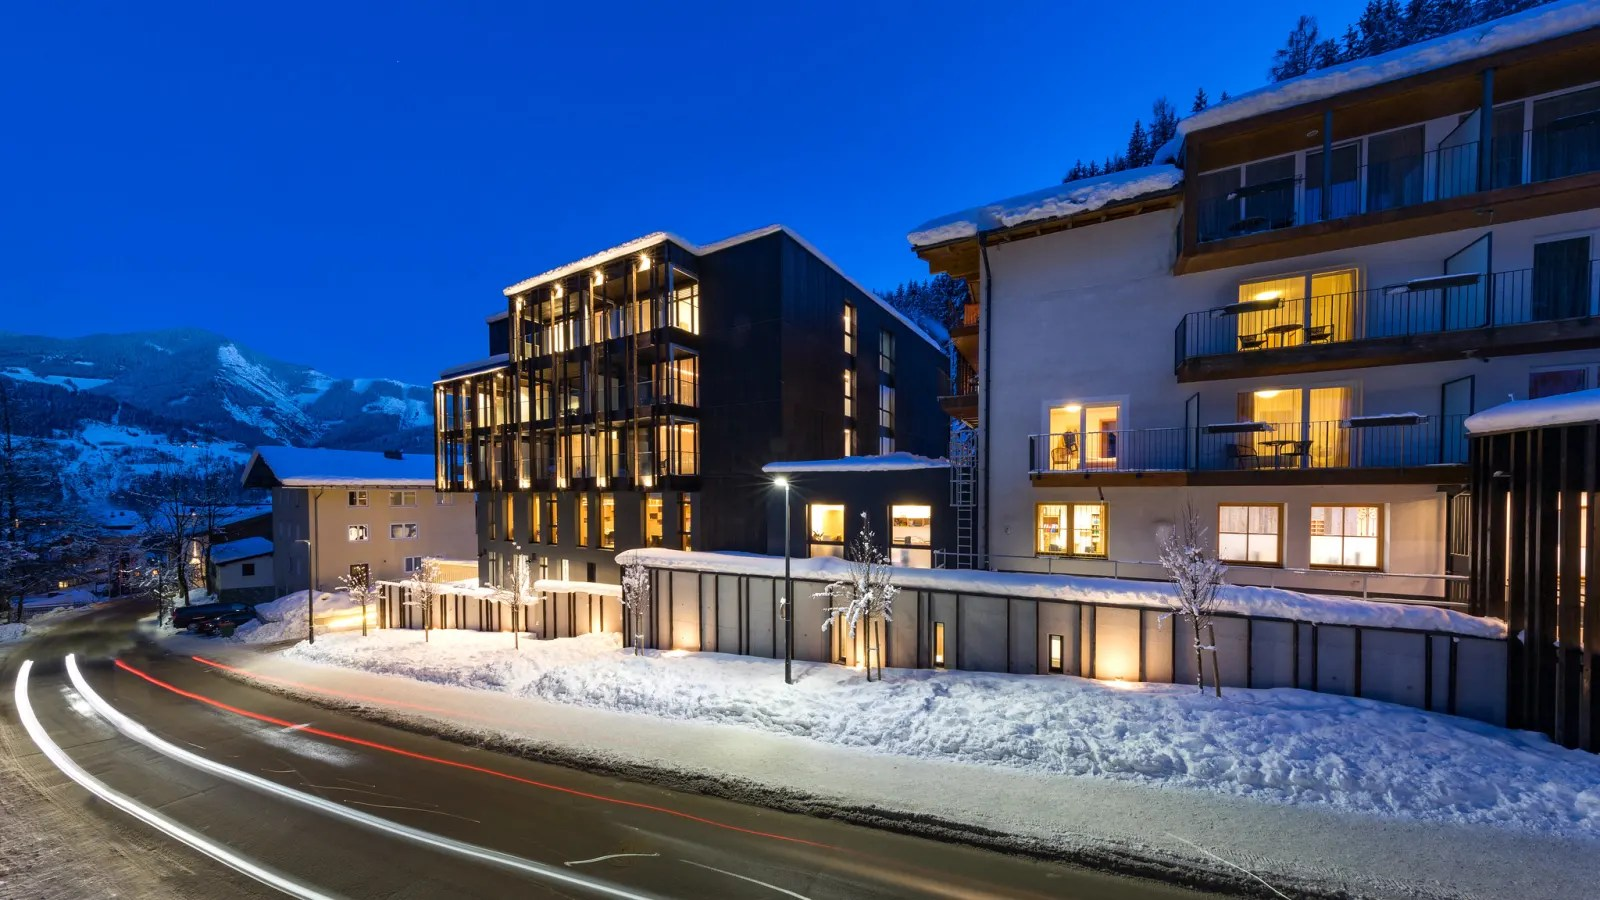 Wellness Bad Zell Hotel Der Waldhof Zell Am See Austria Ski Holidays From Topflight Ie